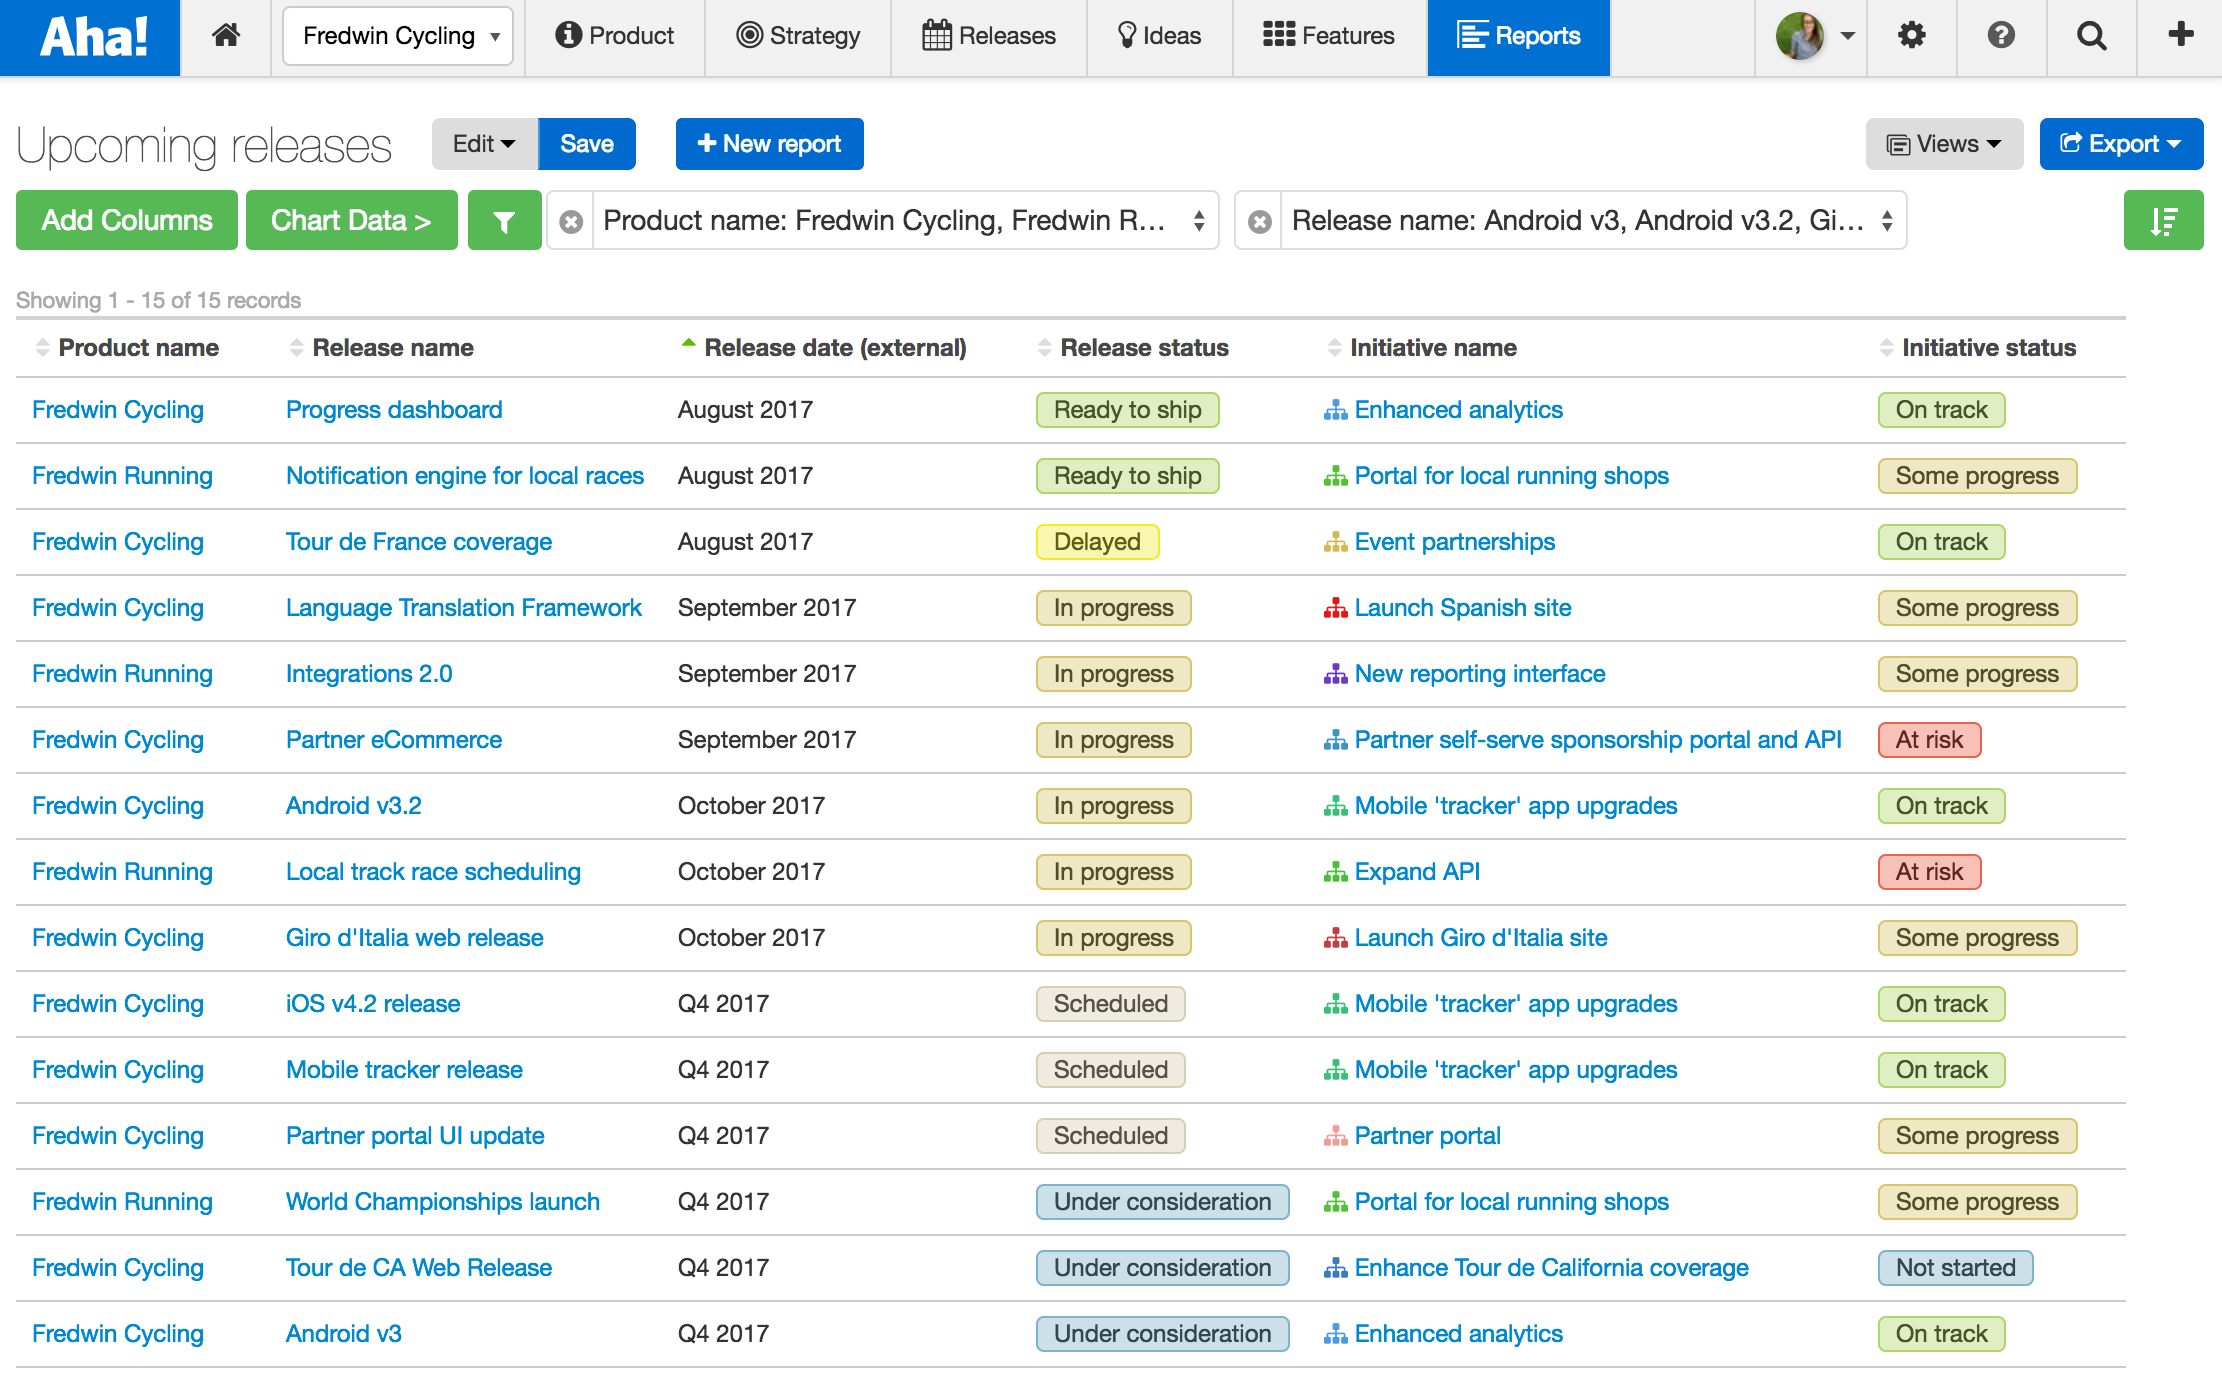 Just Launched 20 Report Templates For Product Managers Aha Blog